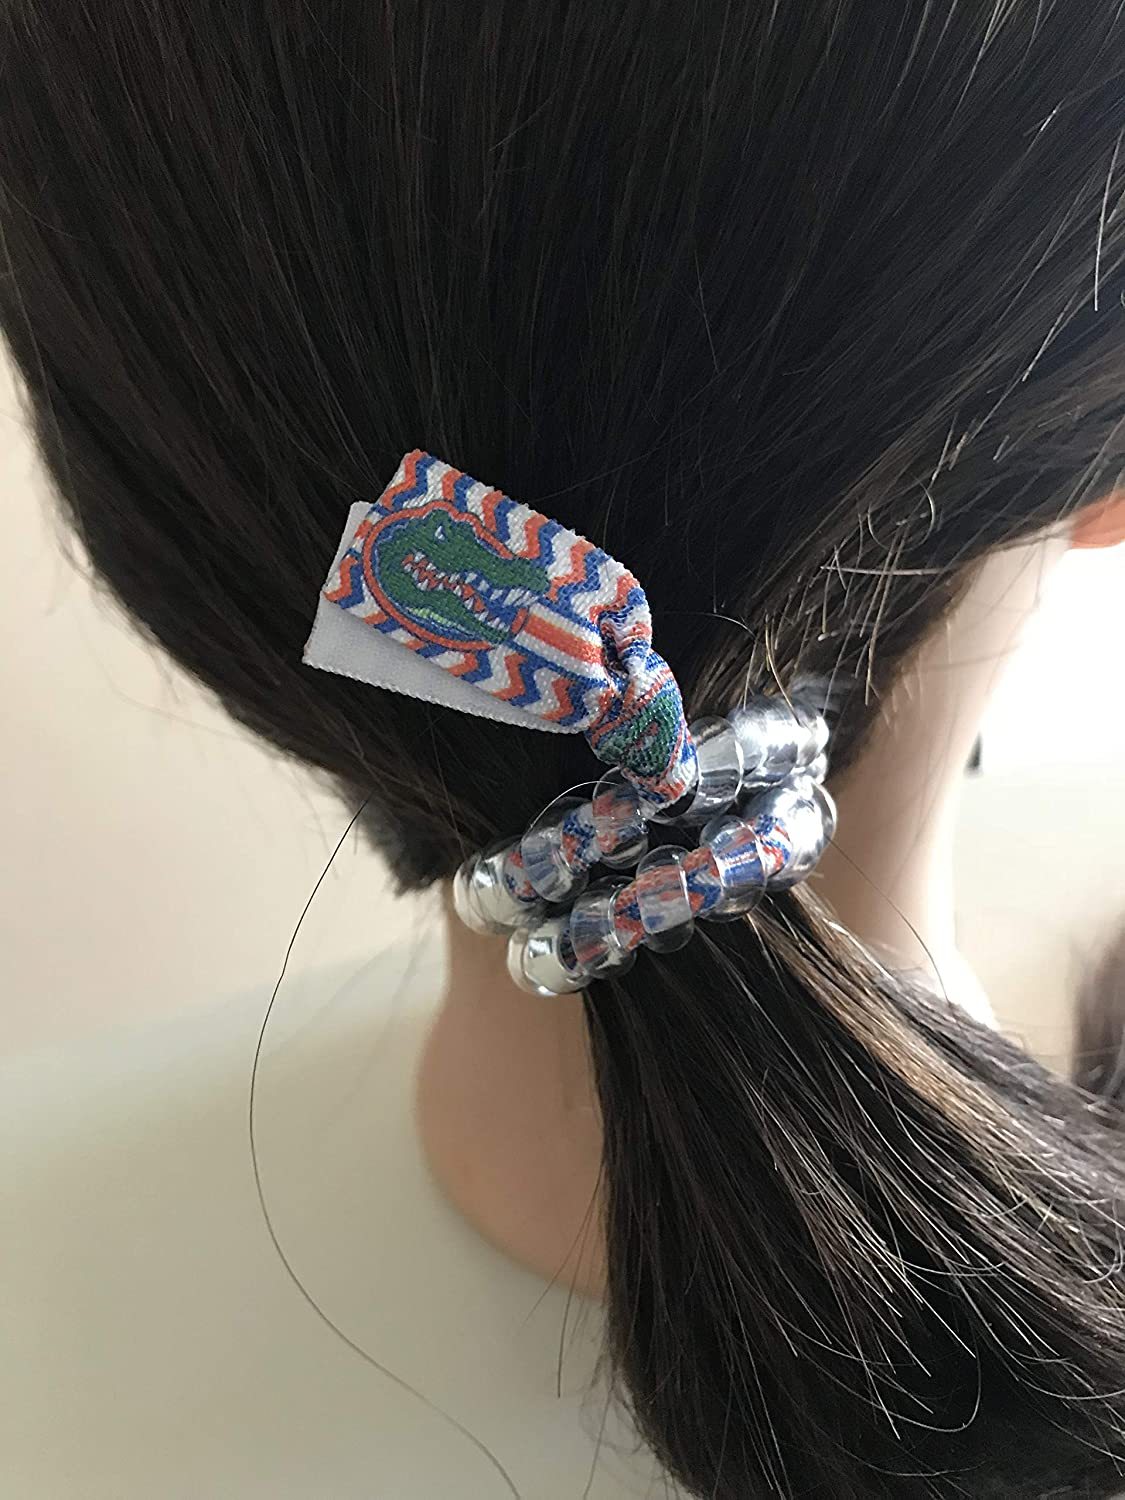 Denver Broncos football Secure sports hair tie hair cord hair elastic for all pony tail types messy buns.